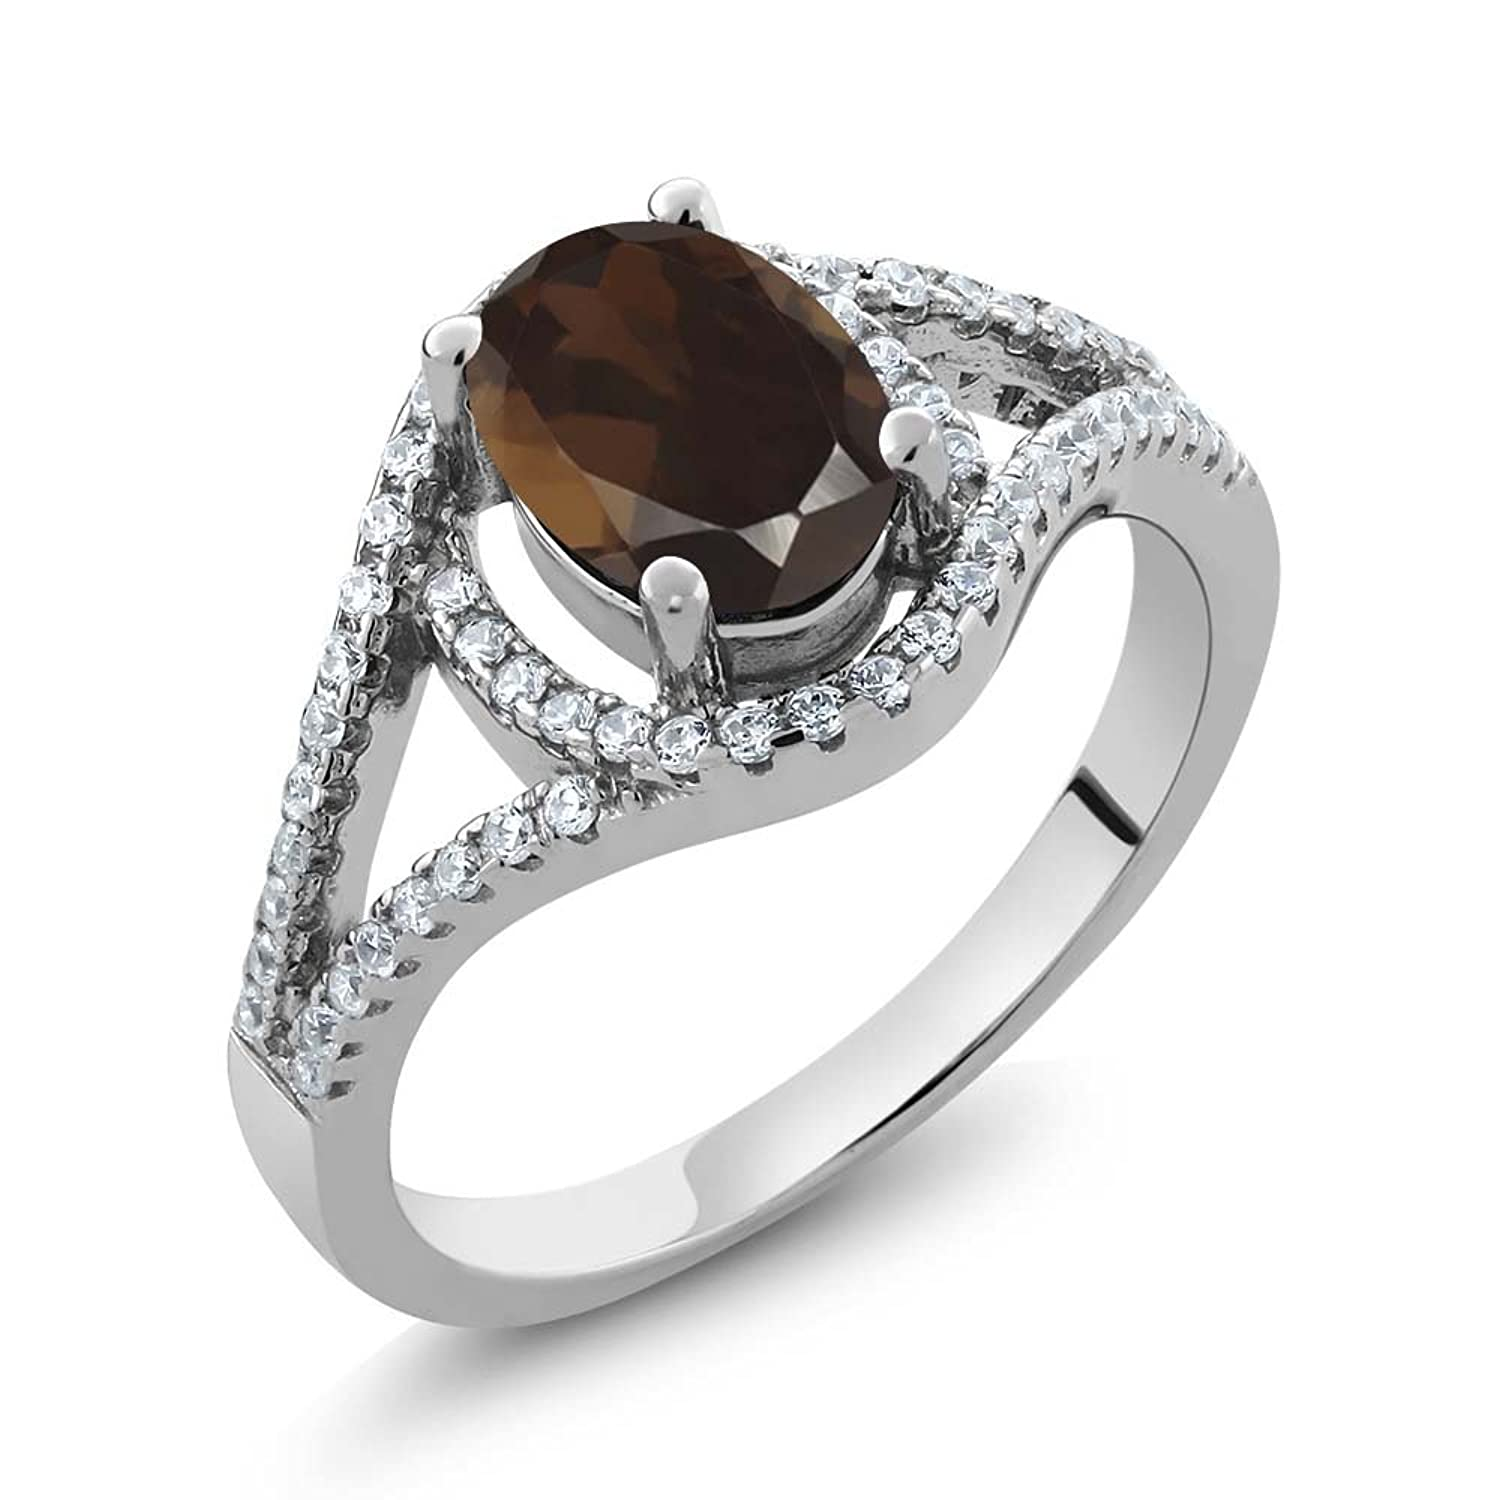 1.91 Ct Oval Brown Smoky Quartz 925 Sterling Silver Women's Ring (Available in size 5, 6, 7, 8, 9)